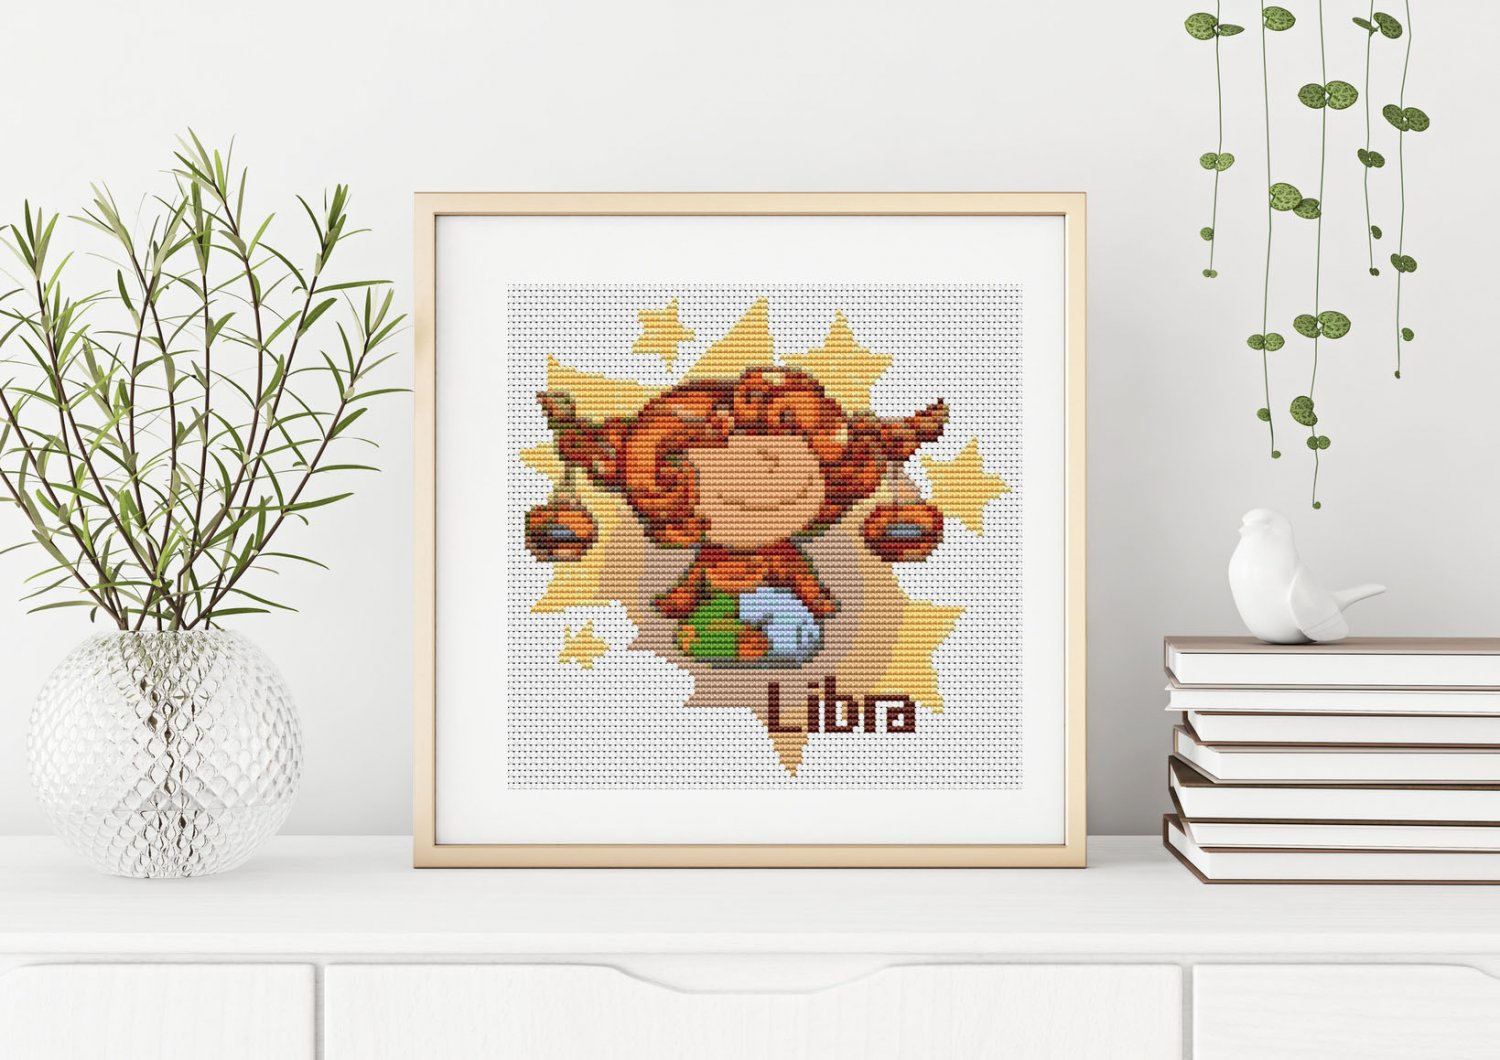 Libra Cross Stitch Chart